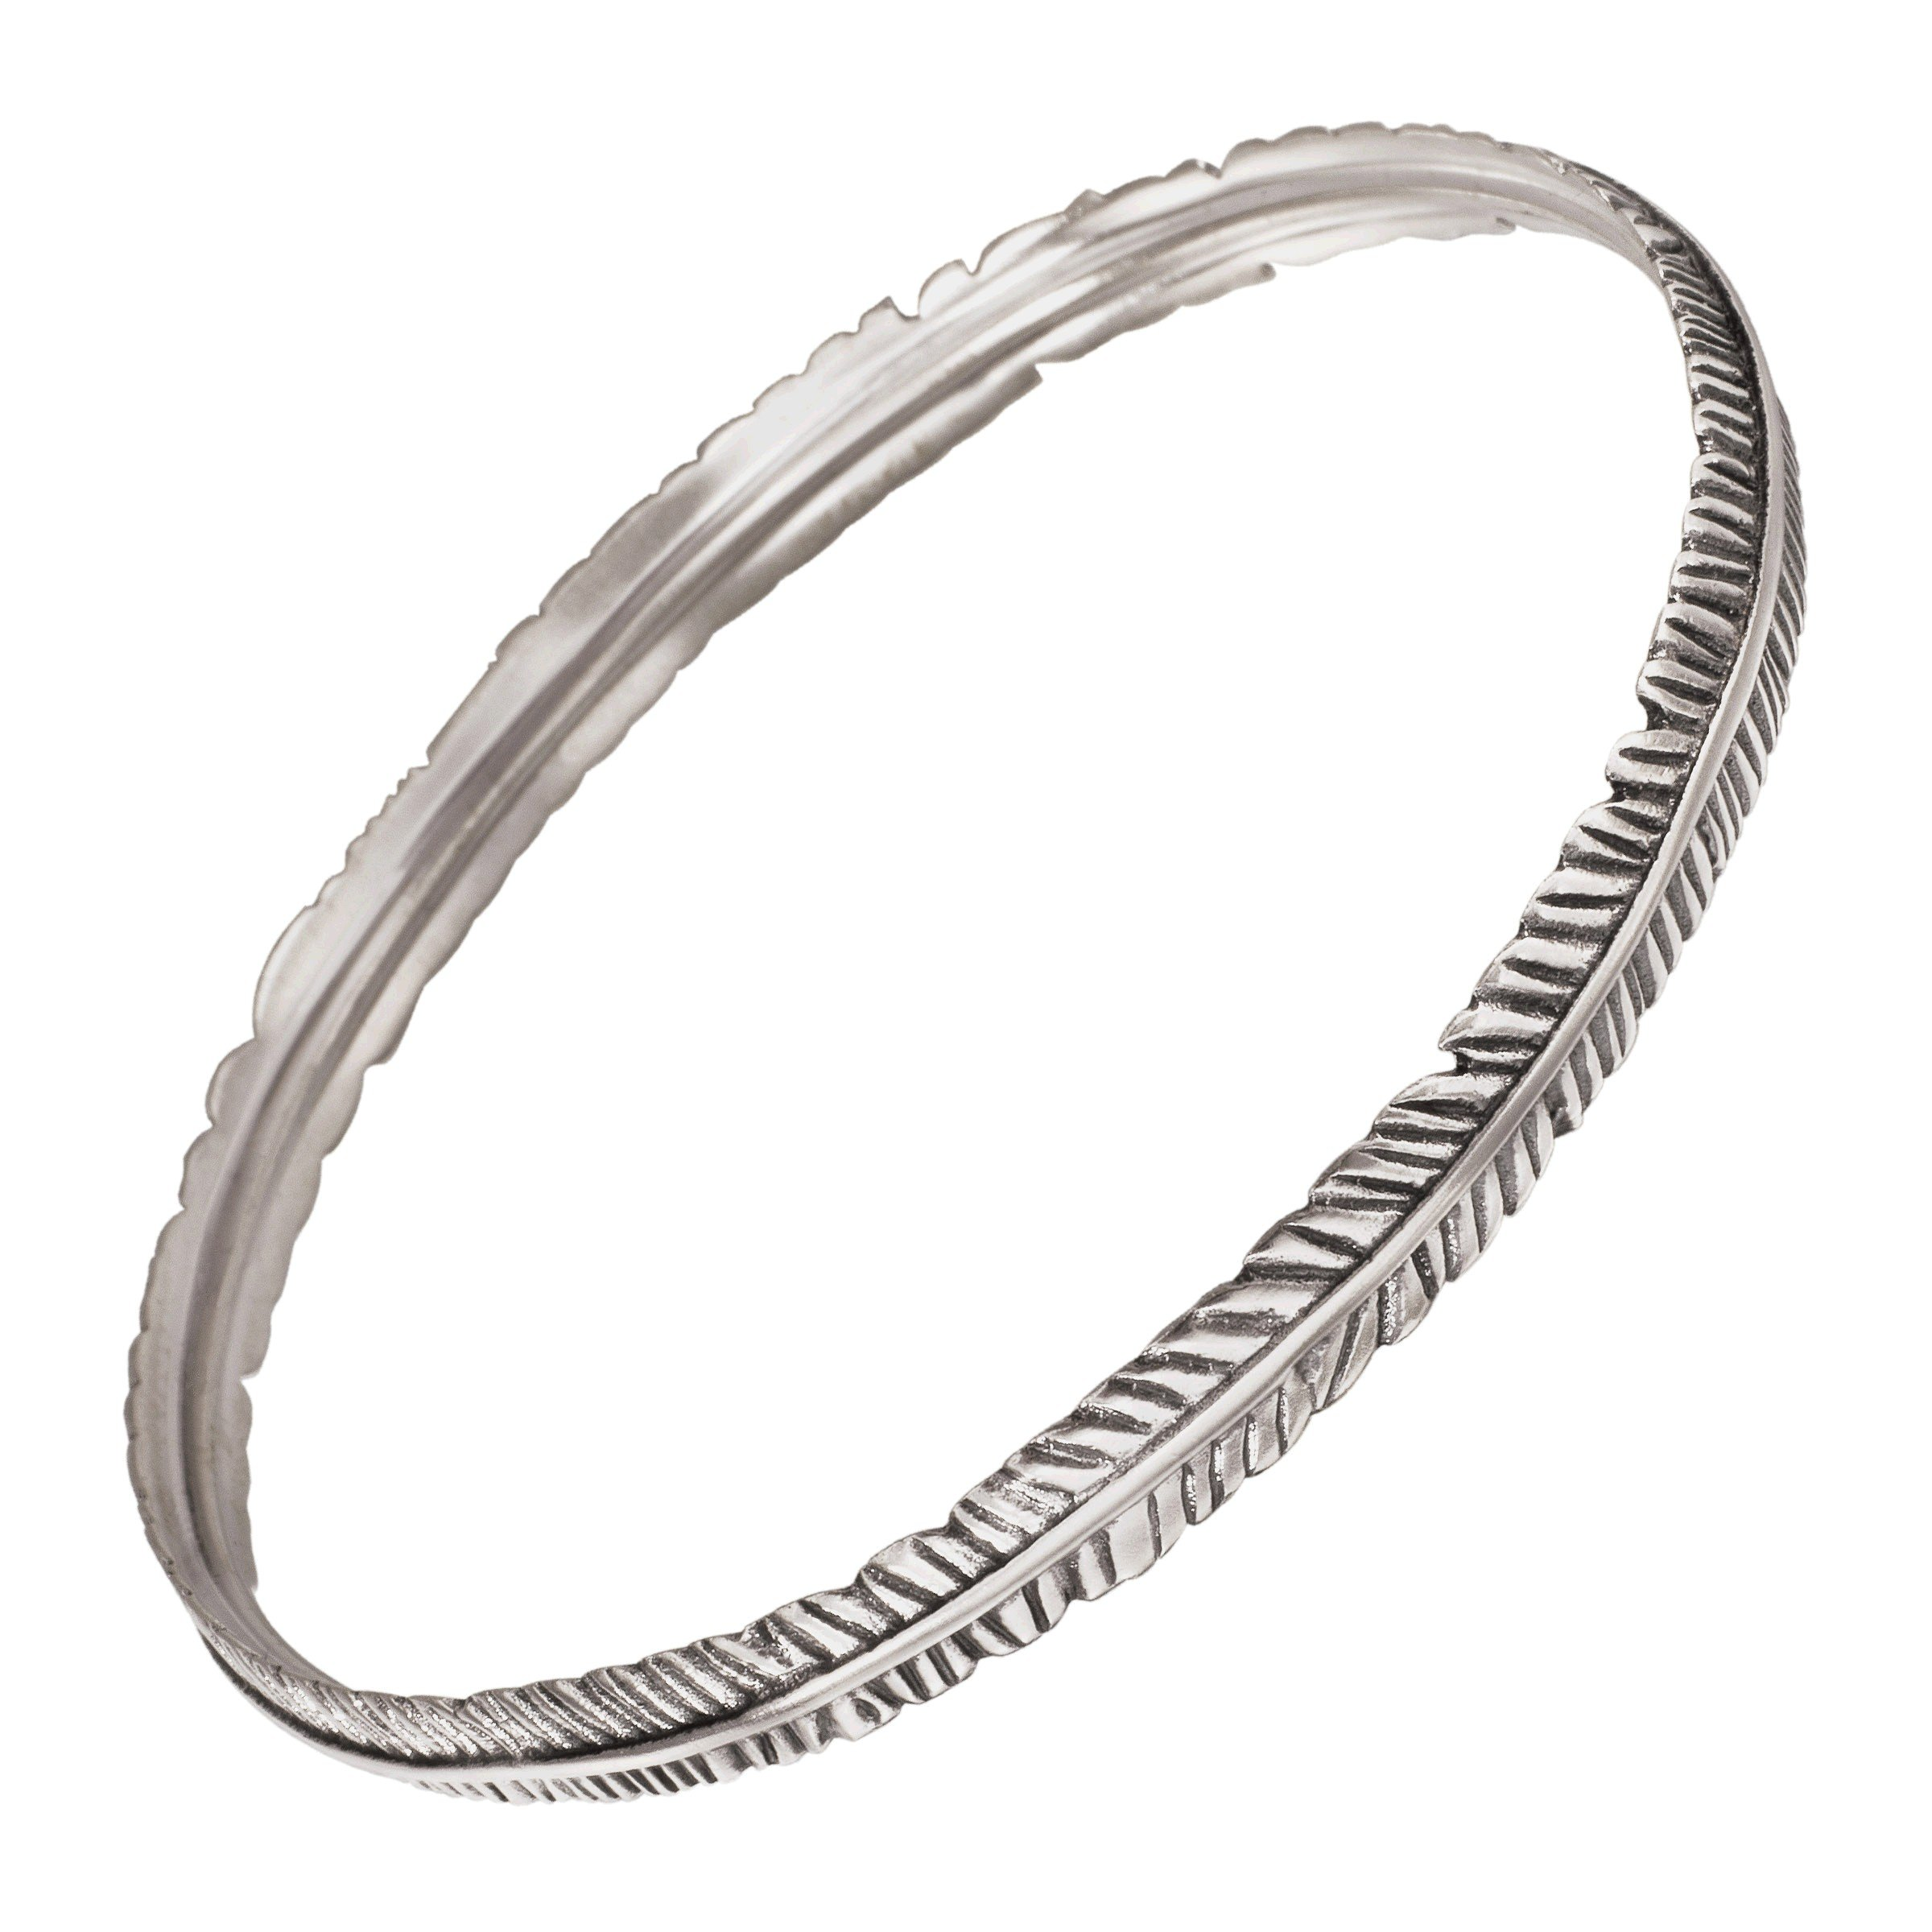 Silpada 'Etched Feather' Bangle Bracelet in Sterling Silver, 8''